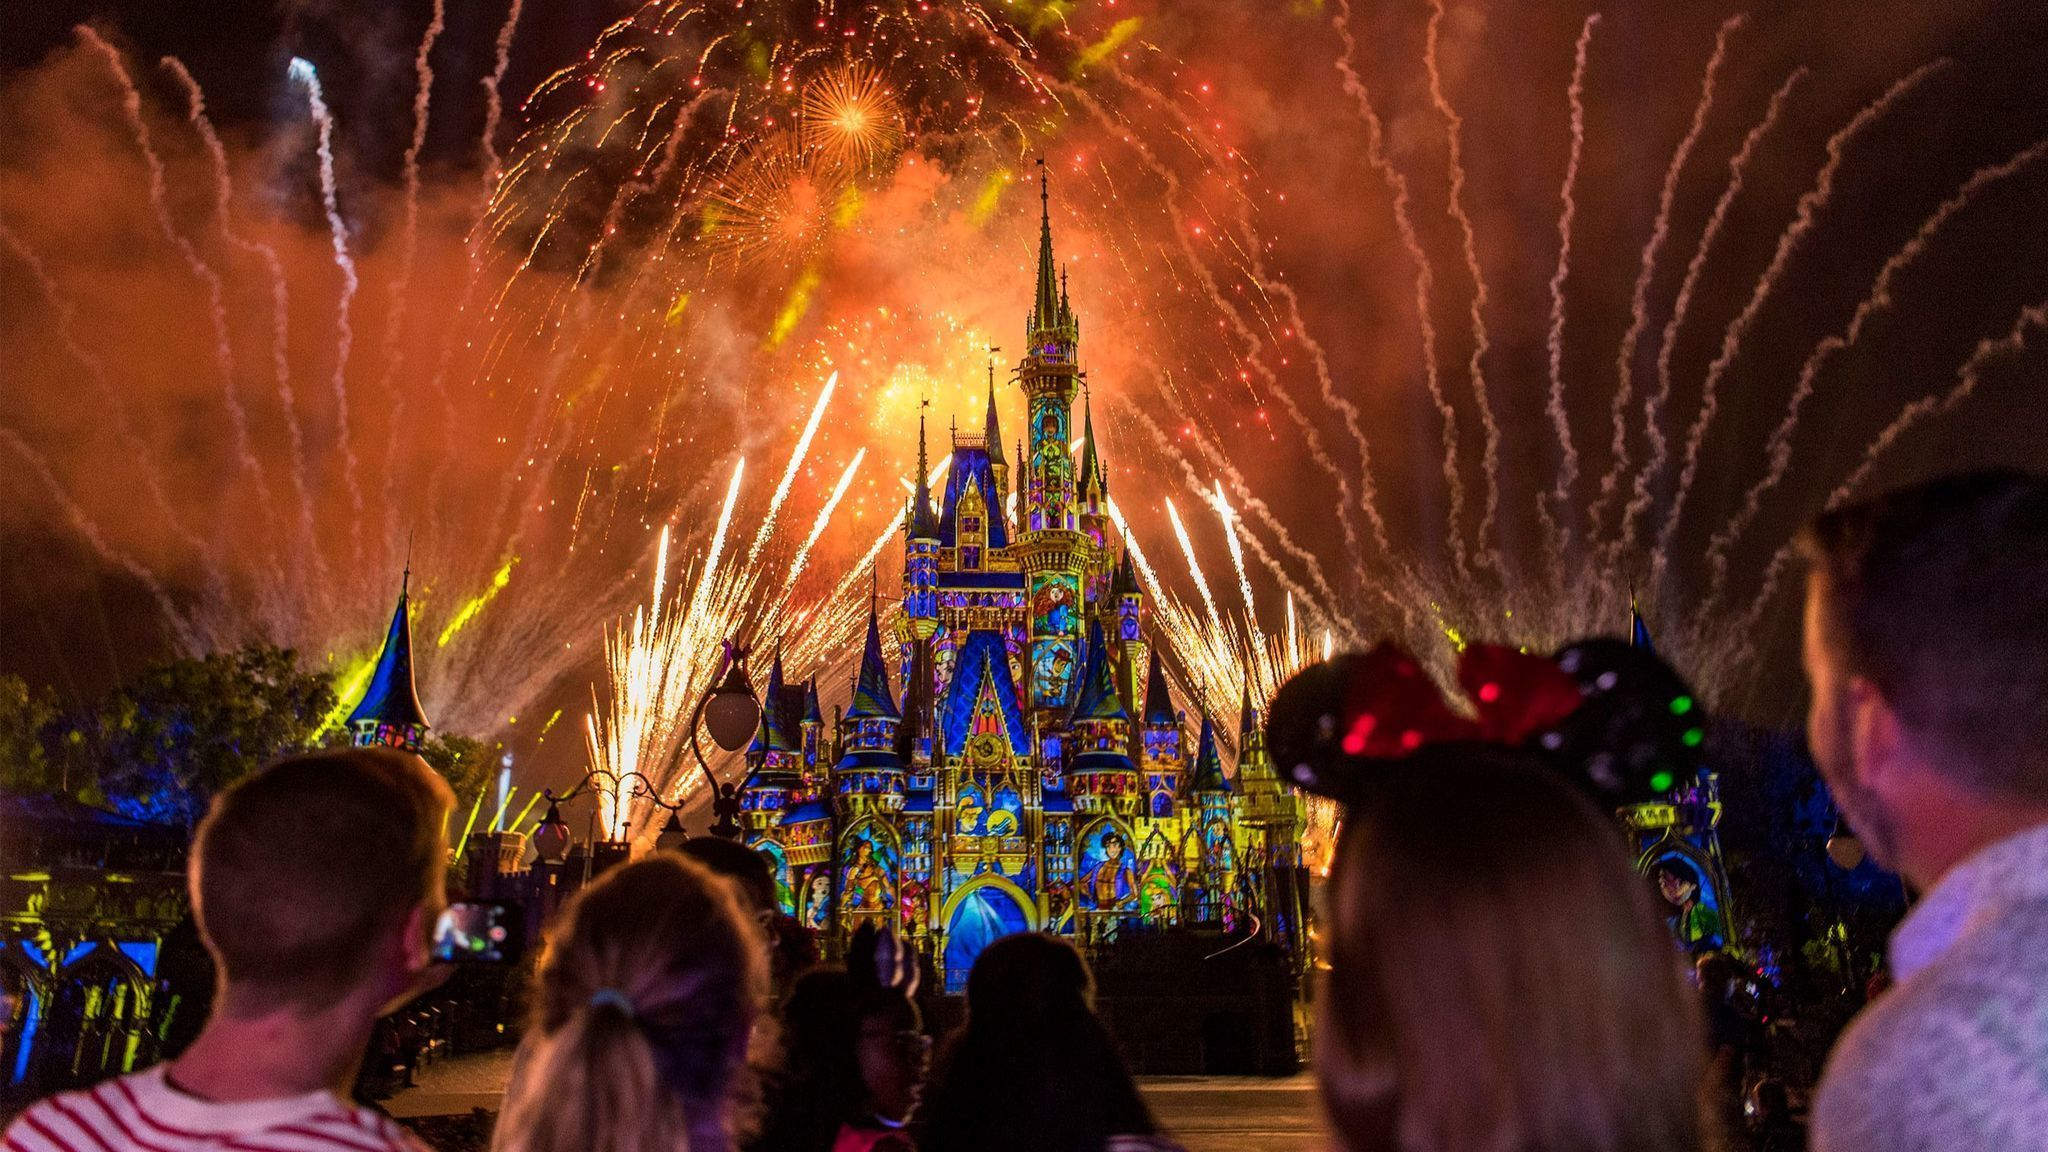 Disney After Hours Late Night Magic Kingdom Event Returning